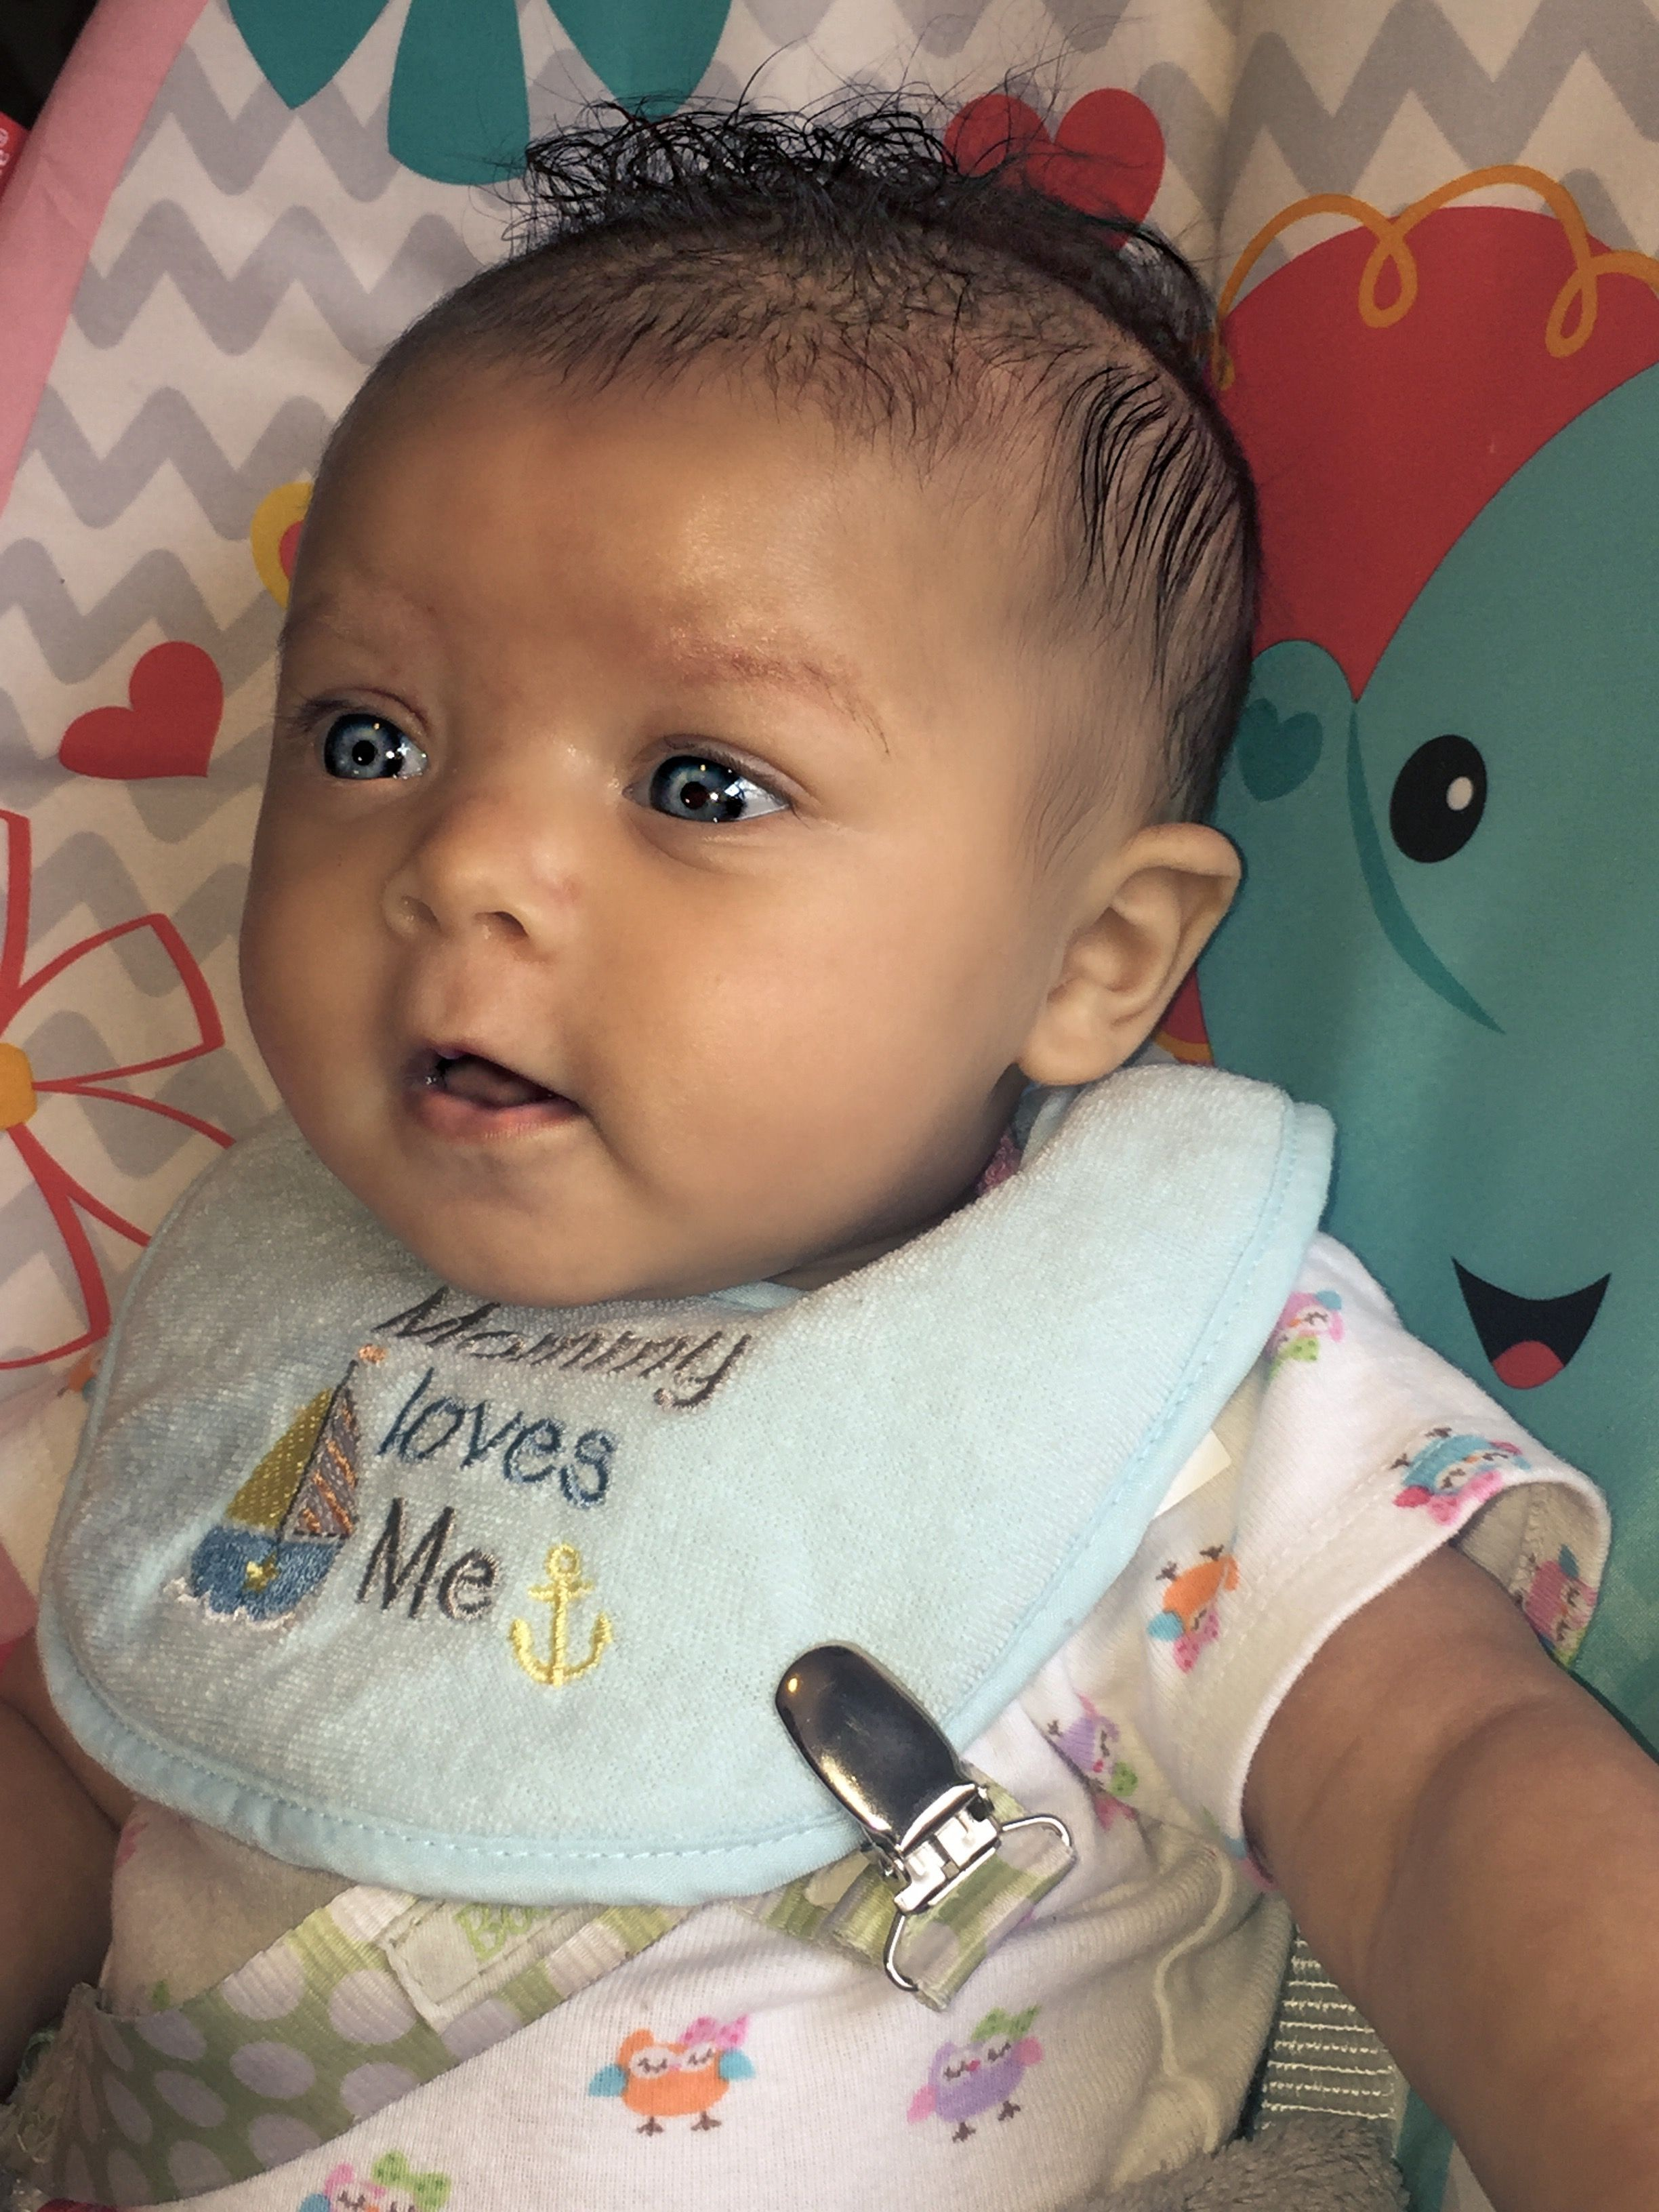 Beautiful Baby Search Archives - Page 3 of 3 - Adored by ...